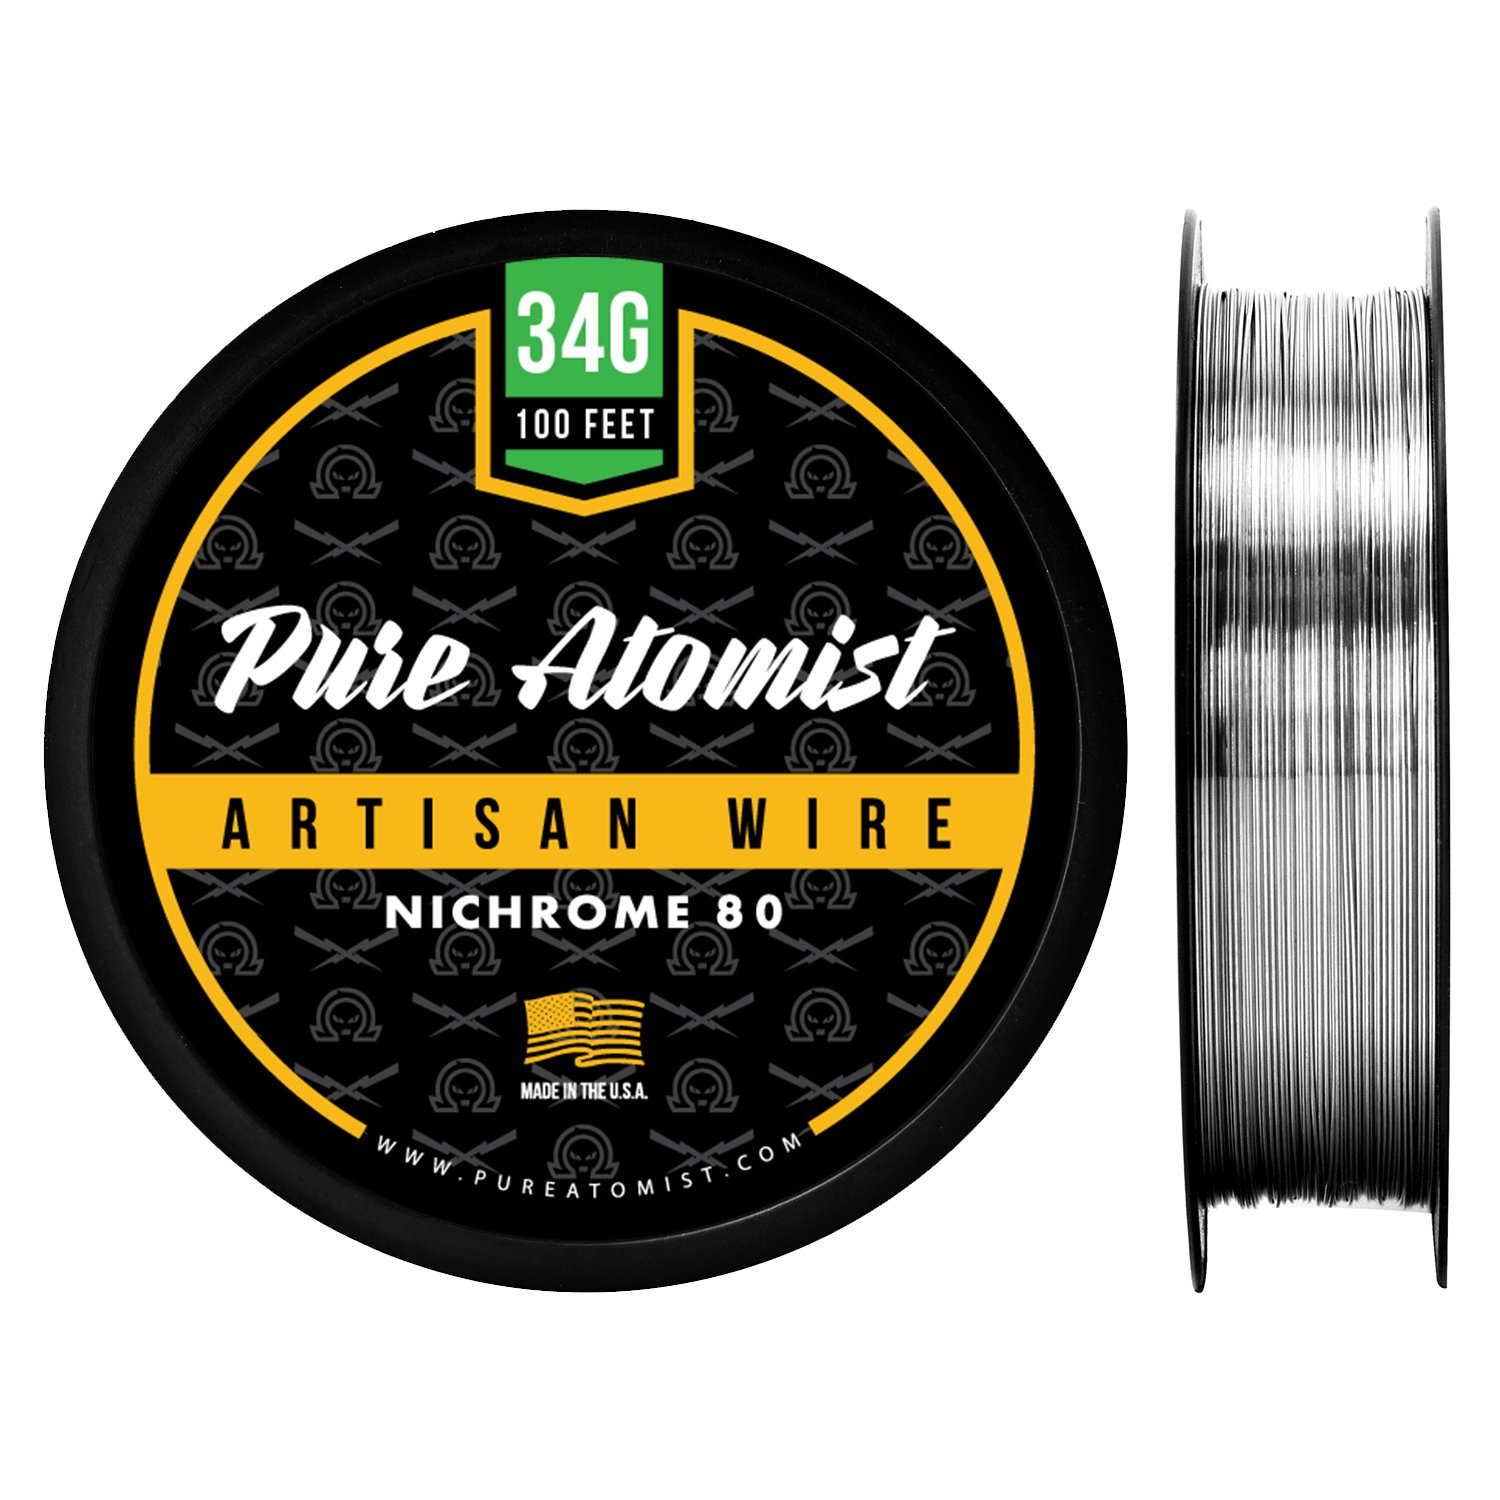 Pure Atomist PA N80 34G100 Nichrome 80 34 Gauge 100 ft. Resistance Wire